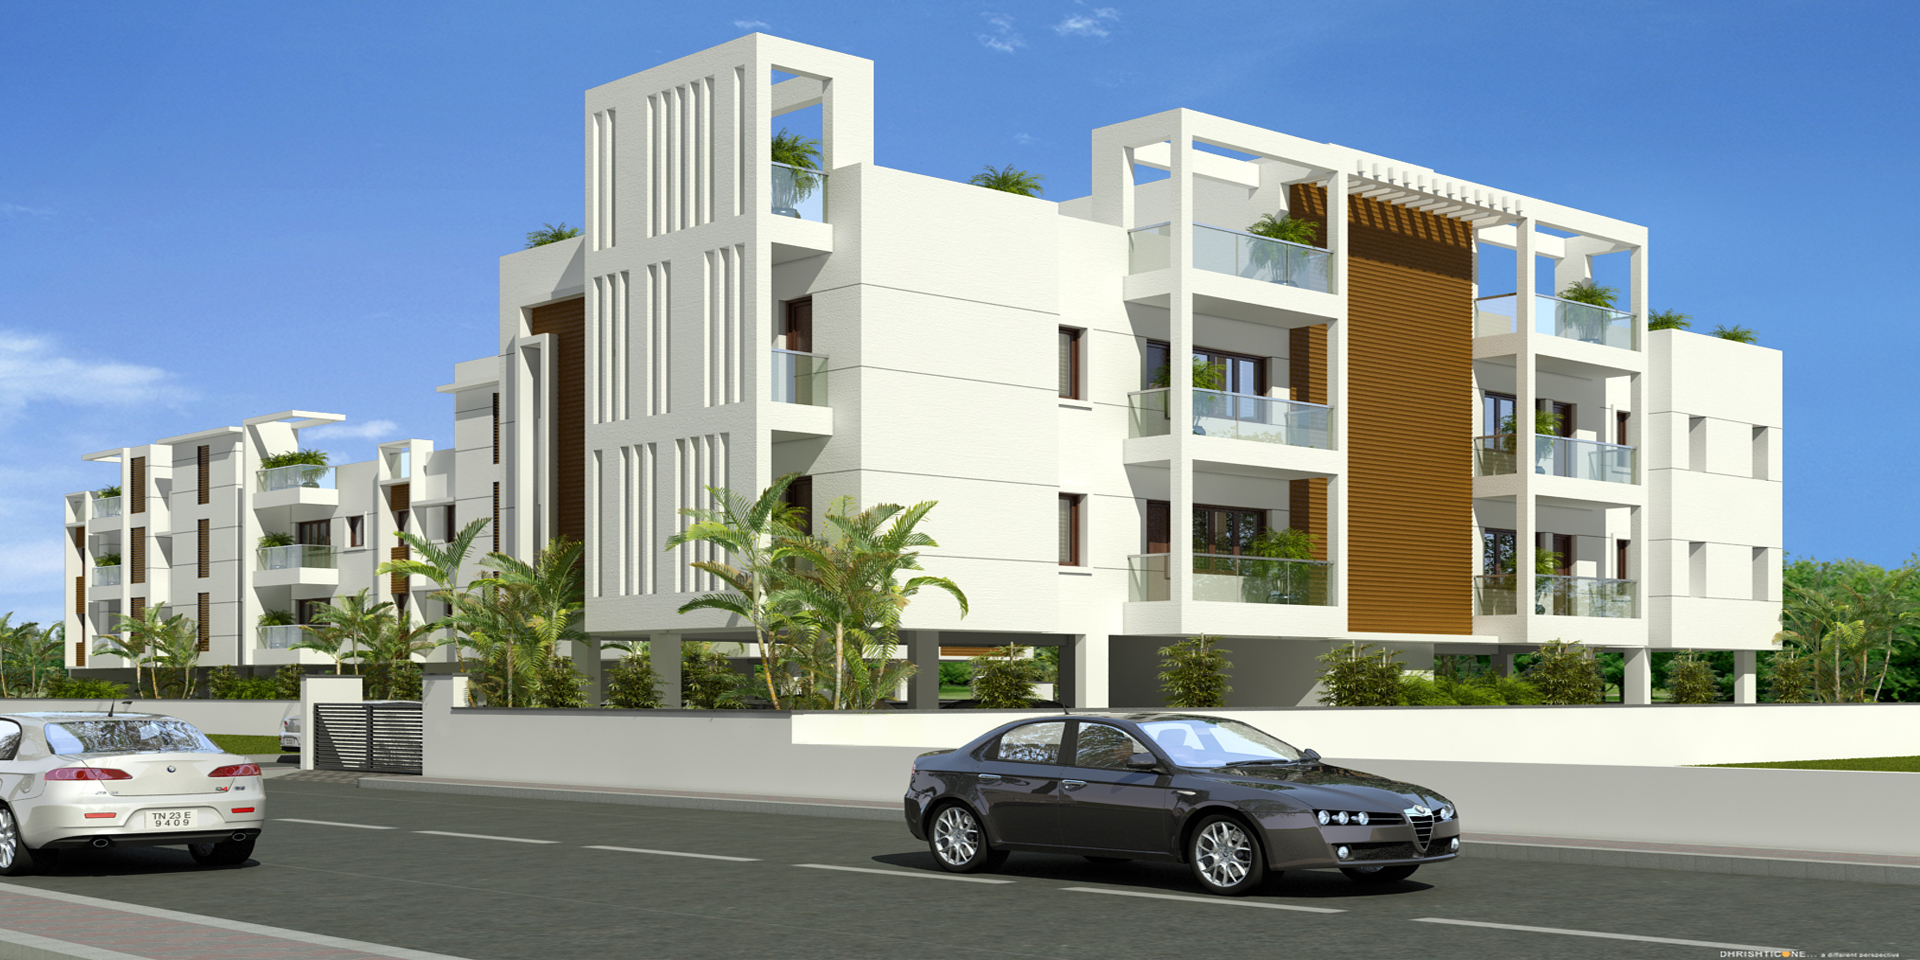 2 BHK Flats for sale in Karapakkam